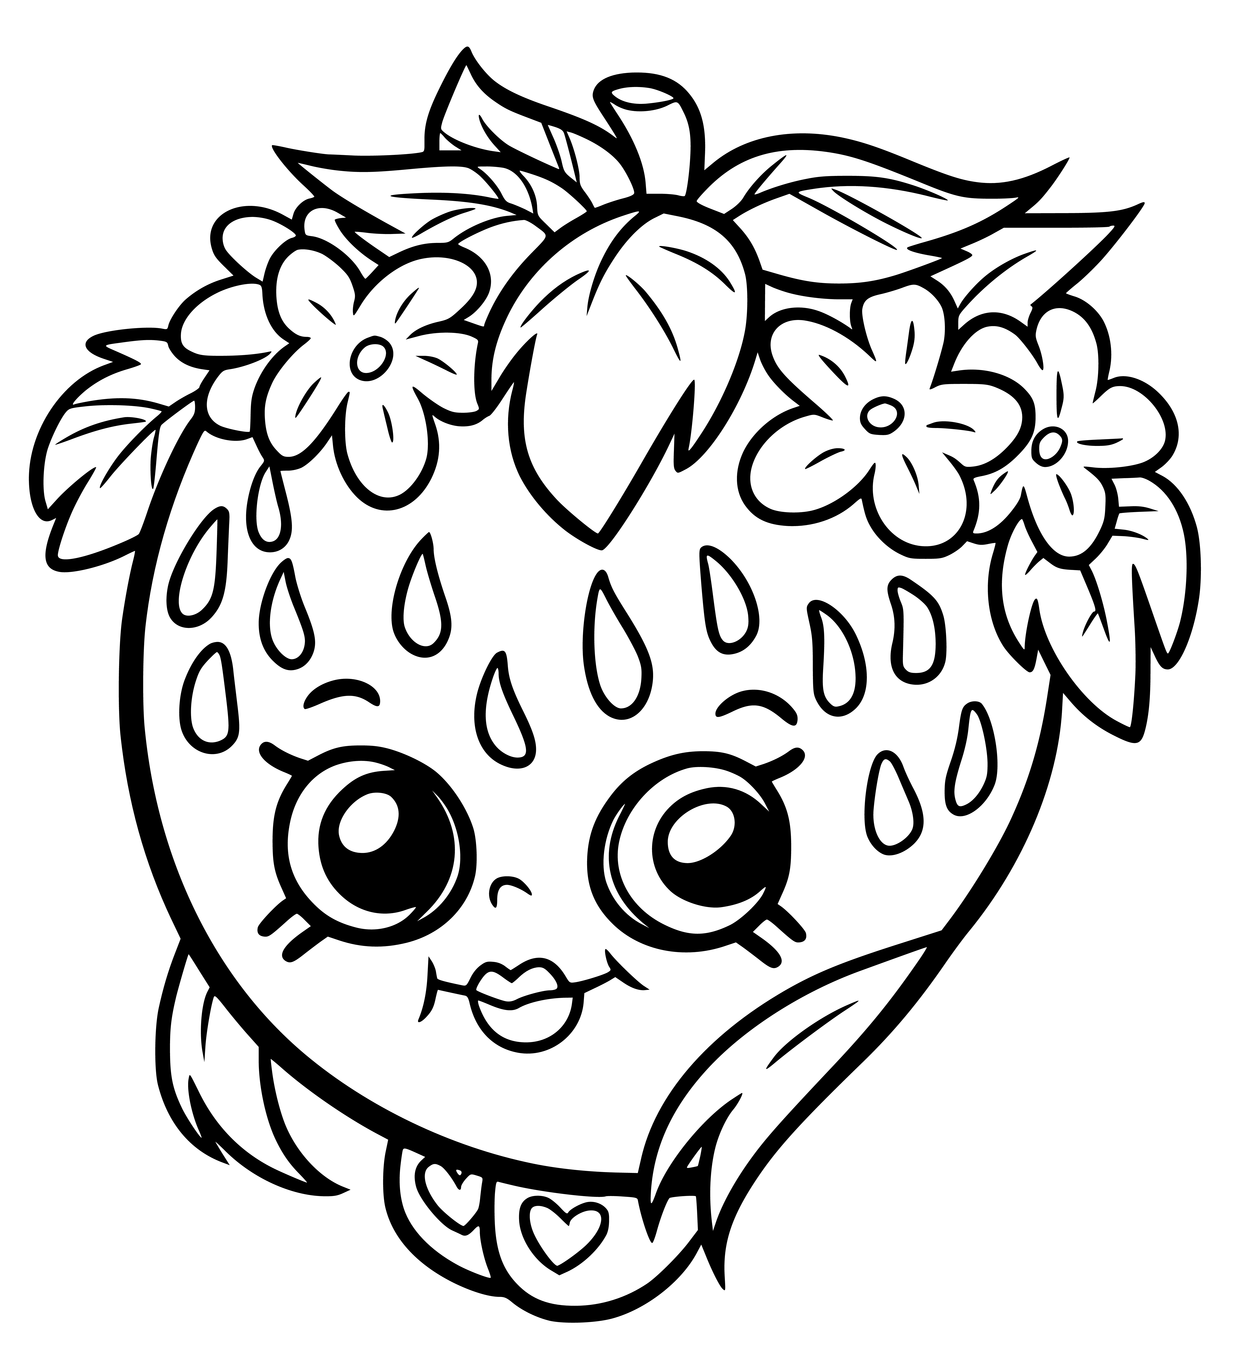 Shopkins Season 7 Strawberry Coloring Page